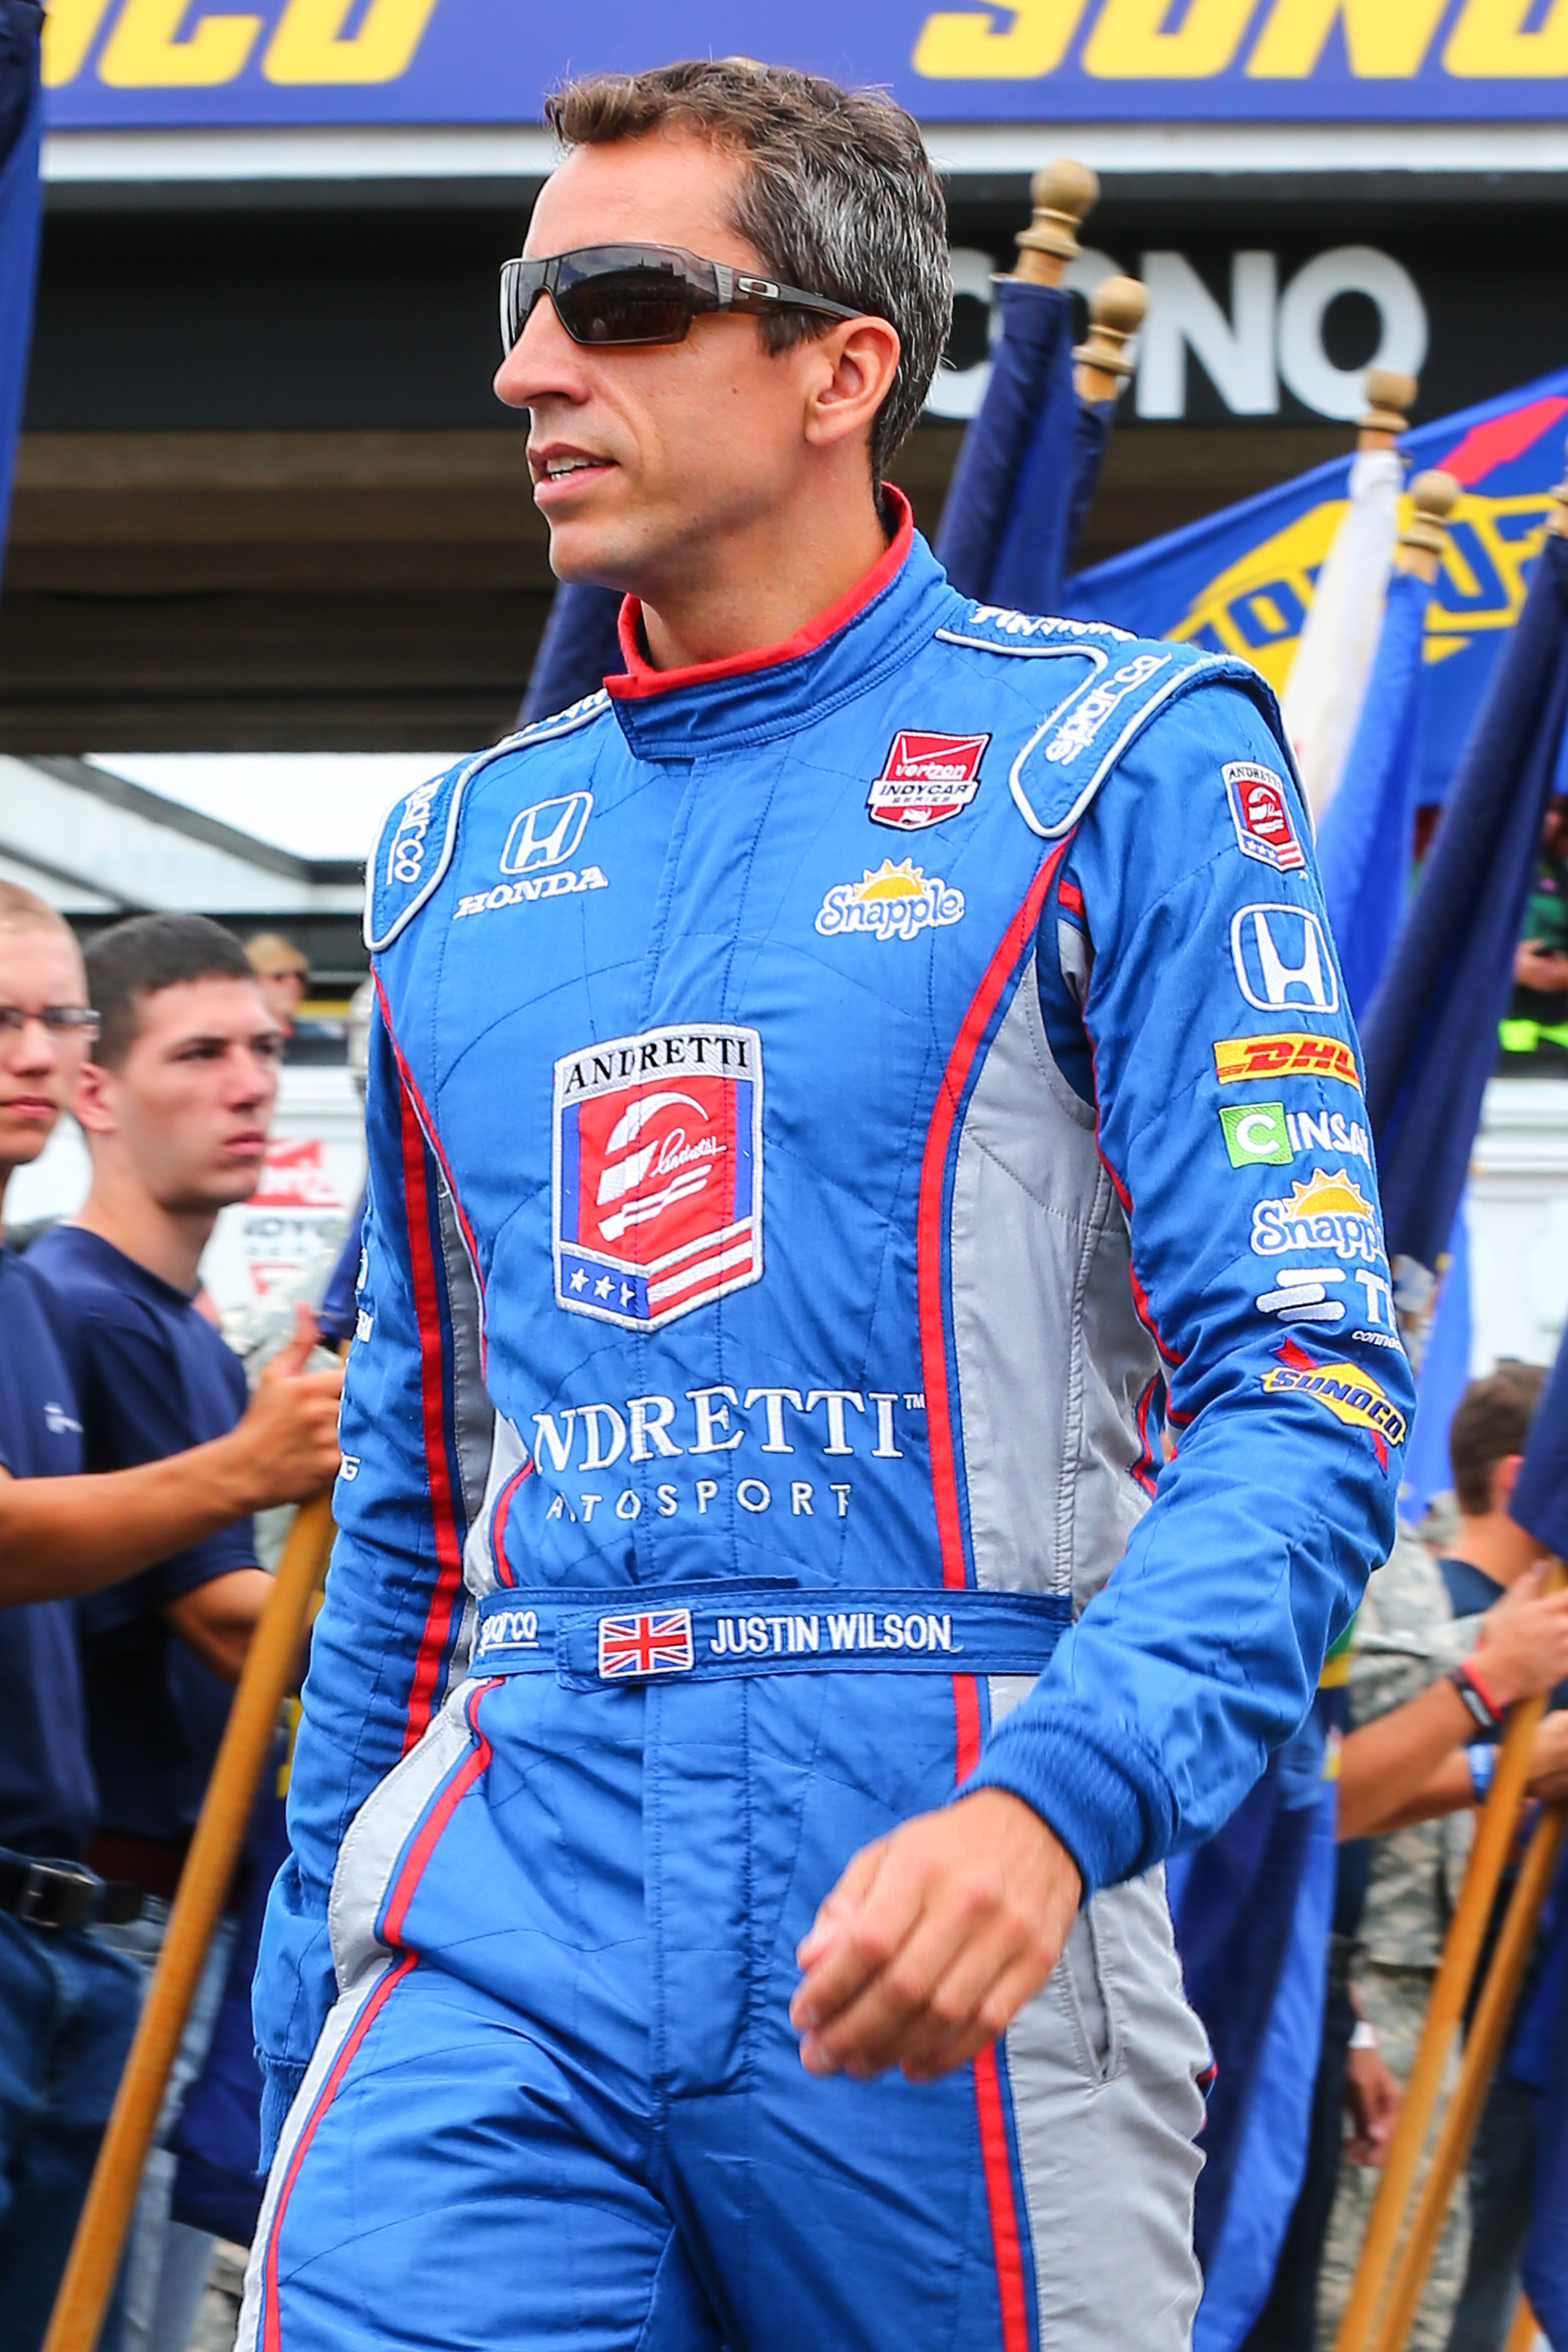 Justin Wilson driver of the #25 Andretti Autosports Honda during driver introductions prior the Verizon IndyCar Series ABC Supply 500 at Pocono Raceway in Long Pond, PA on Aug. 23, 2015.